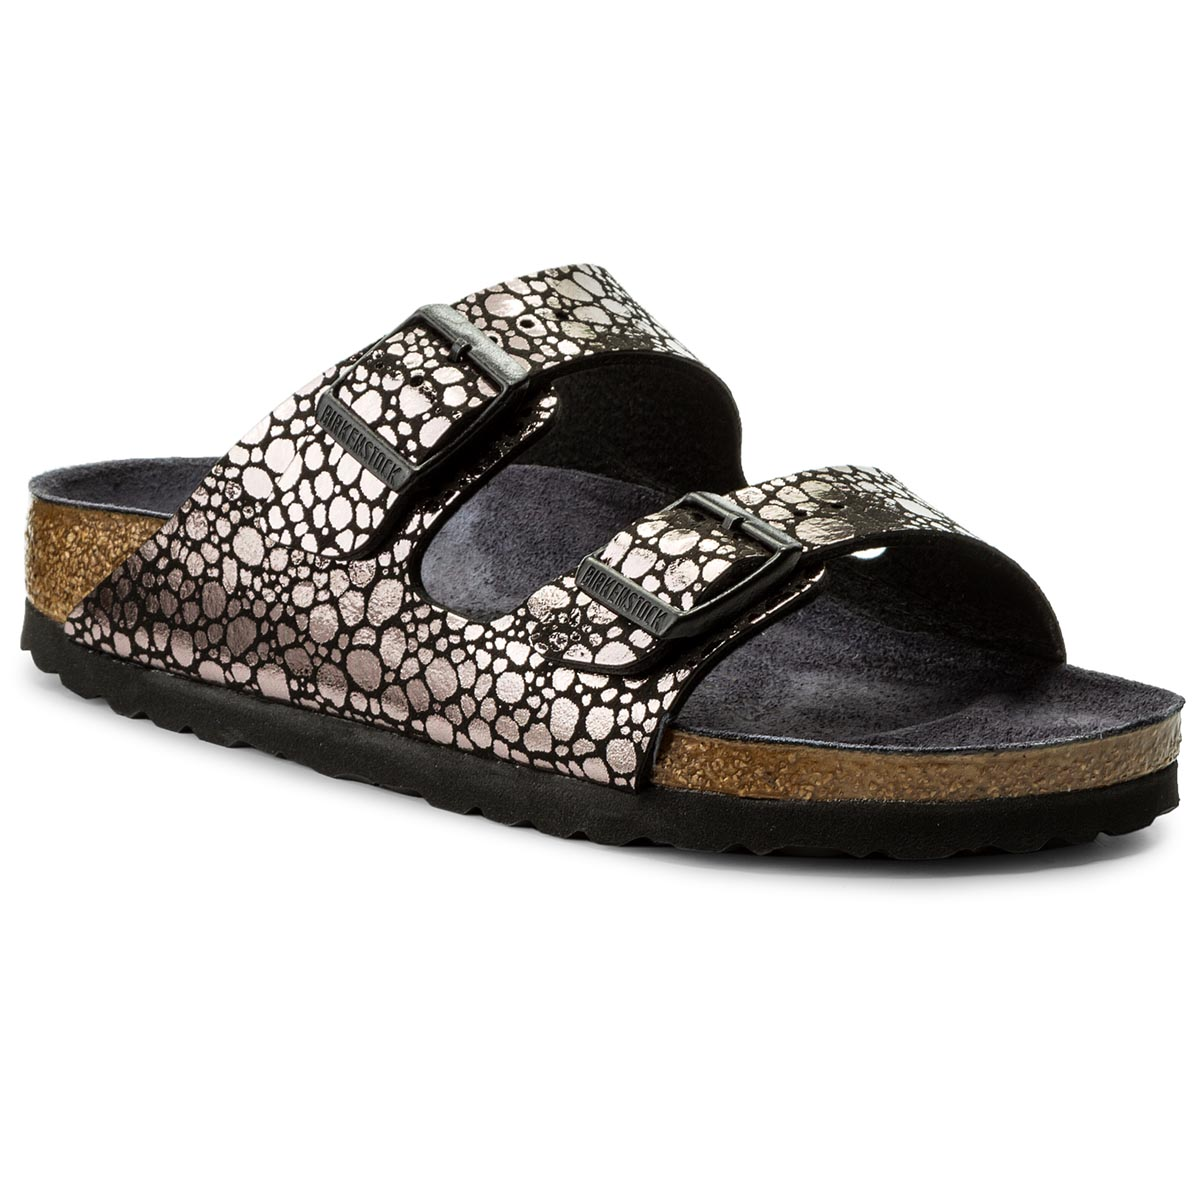 Klapki BIRKENSTOCK - Arizona Bs 1008872  Metallic Stones Black